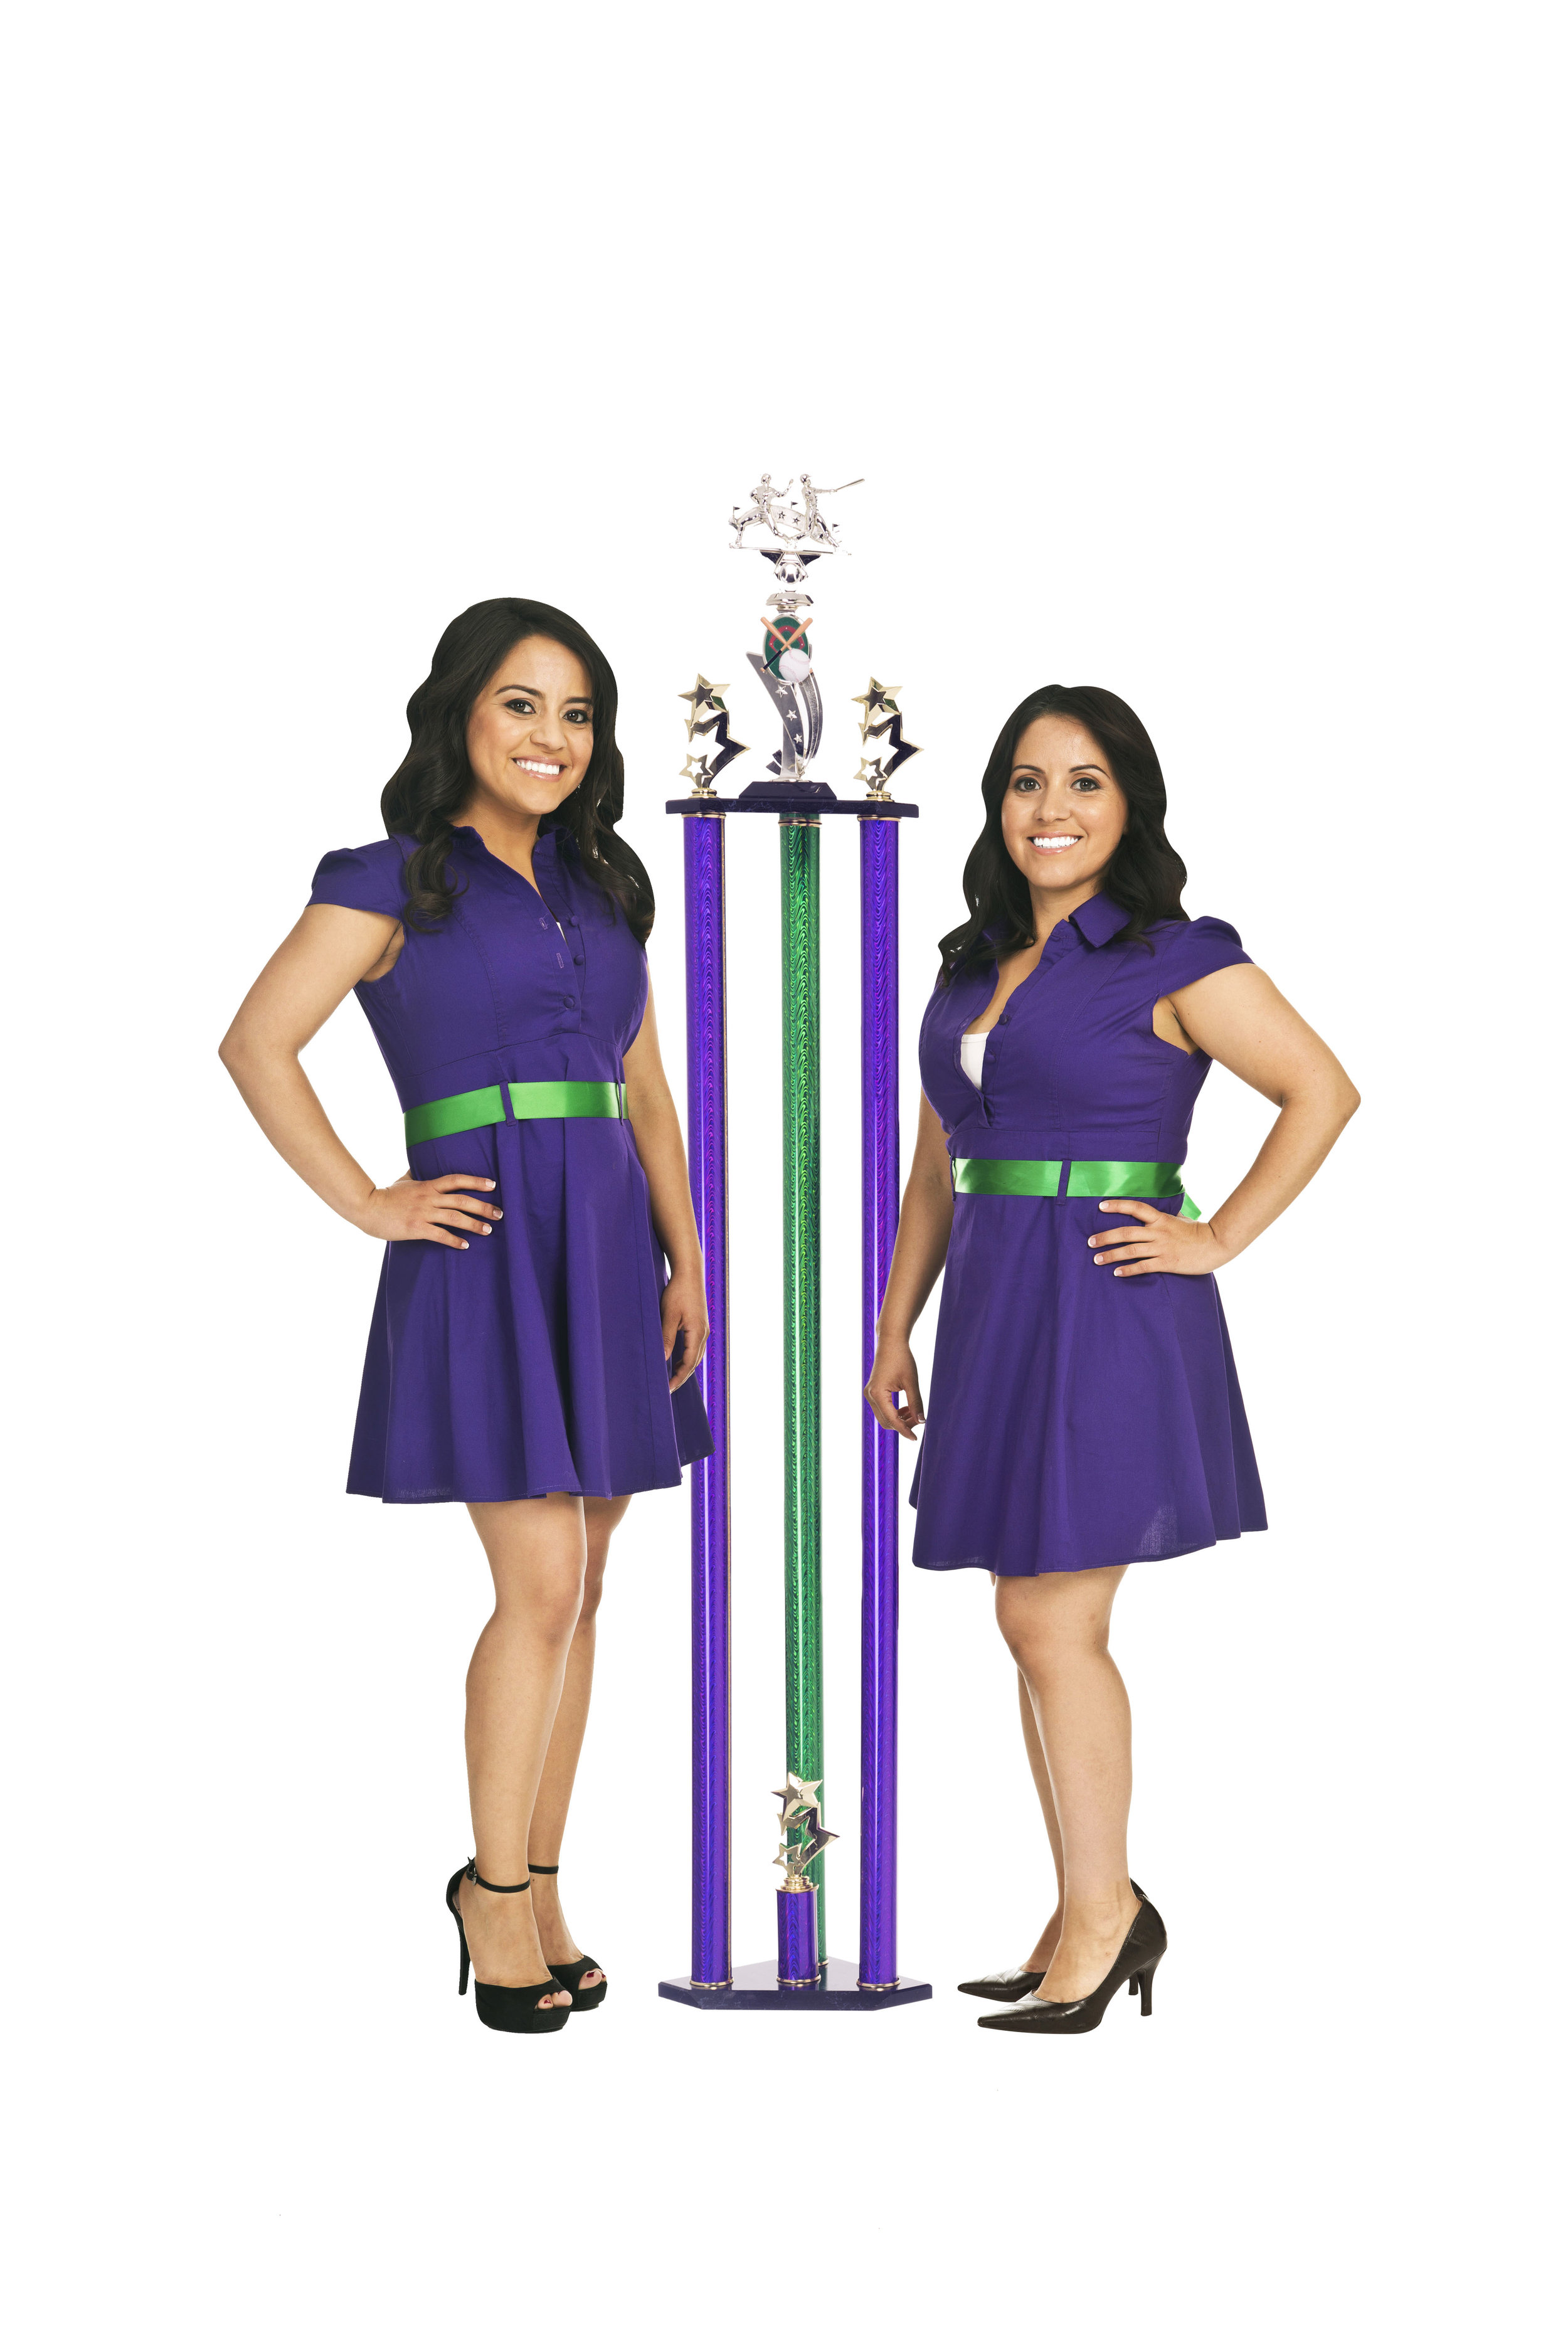 The Lazer Ladies standing next to one of their laser engraved trophies.